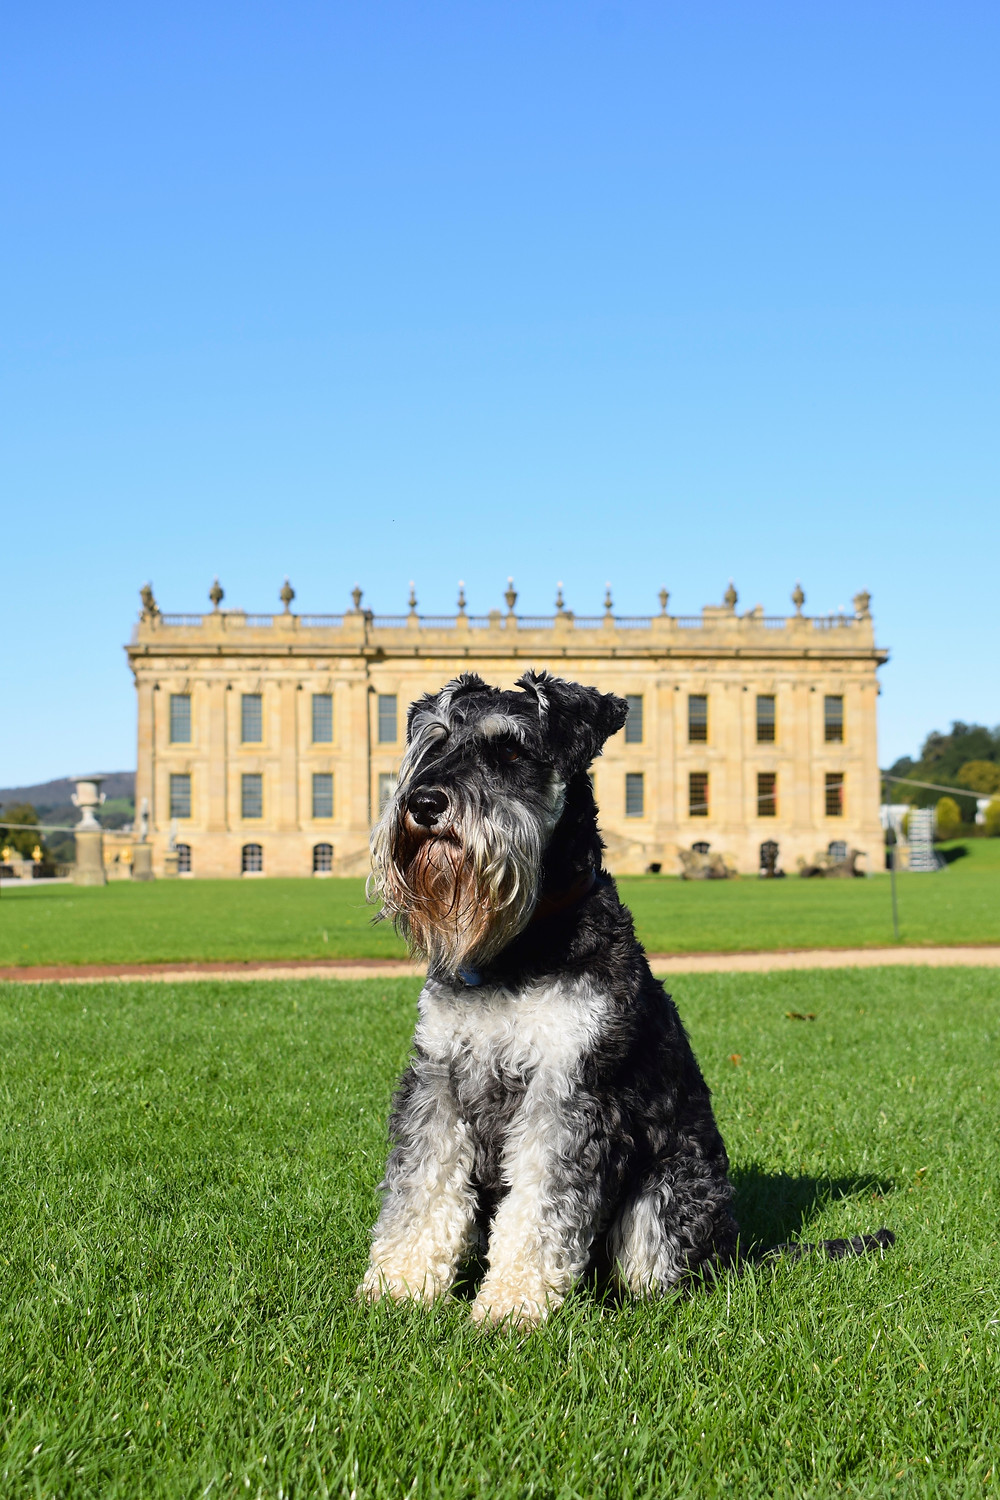 Monty the Miniature Schnauzer in front of the front facade of Chatsworth house in Derbyshire